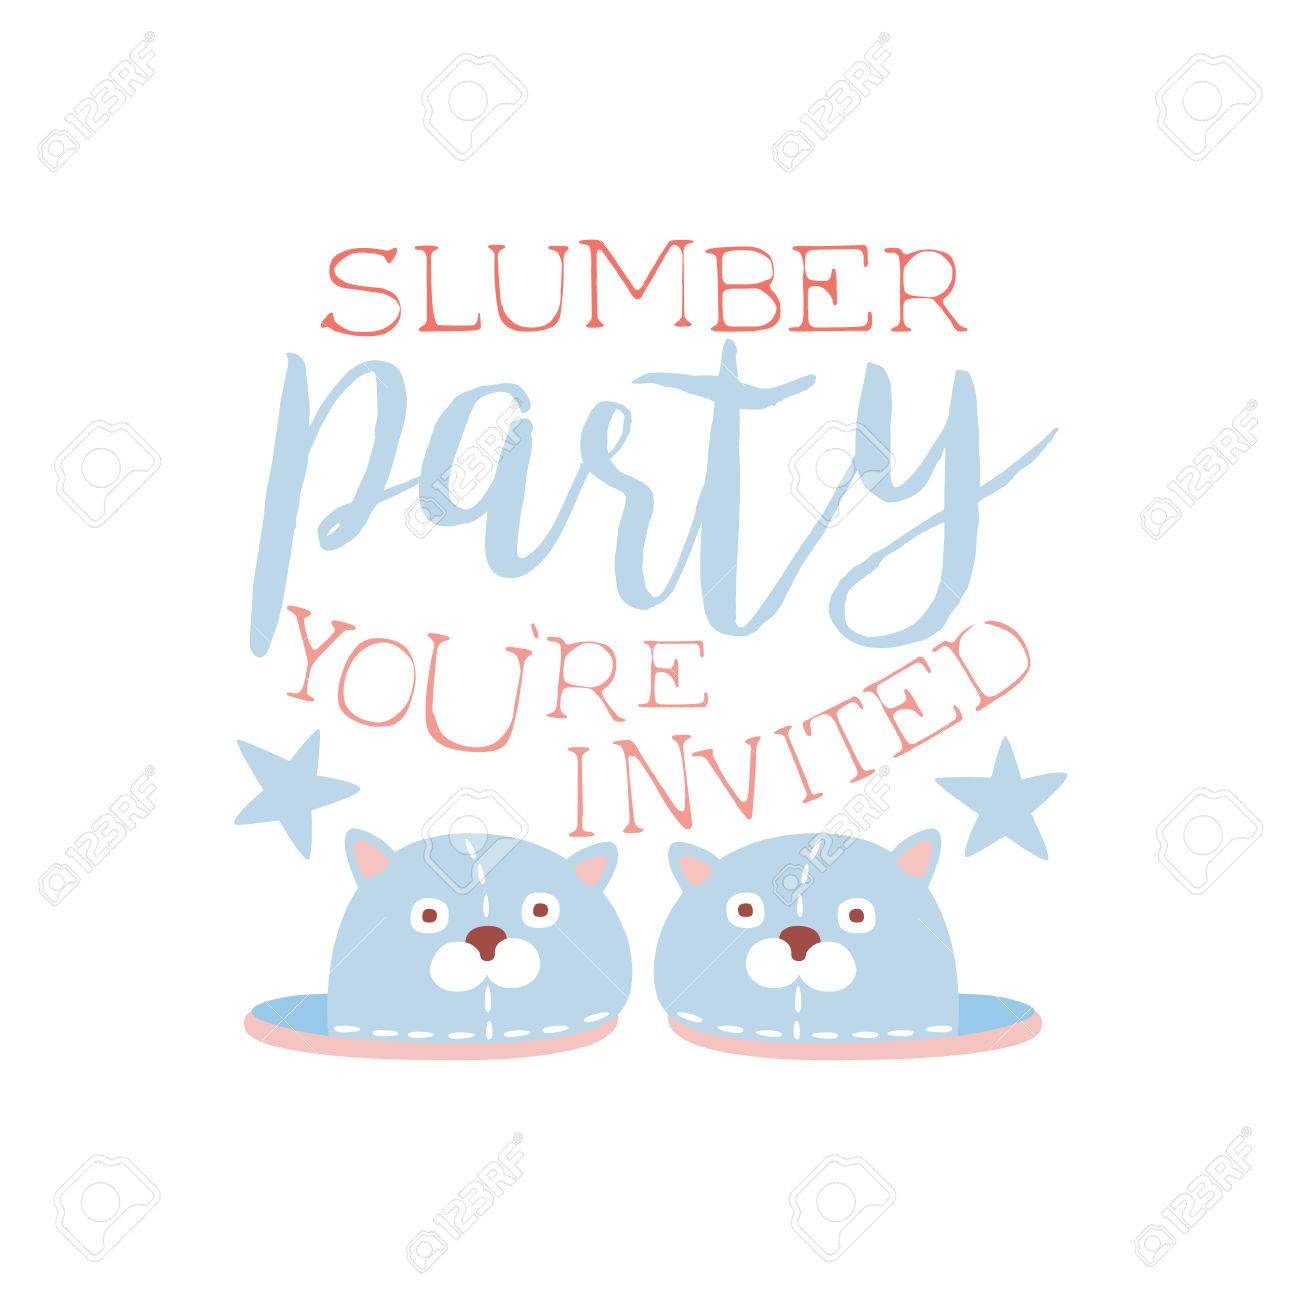 Girly Pajama Party Invitation Card Template With Pair Of Slippers ...